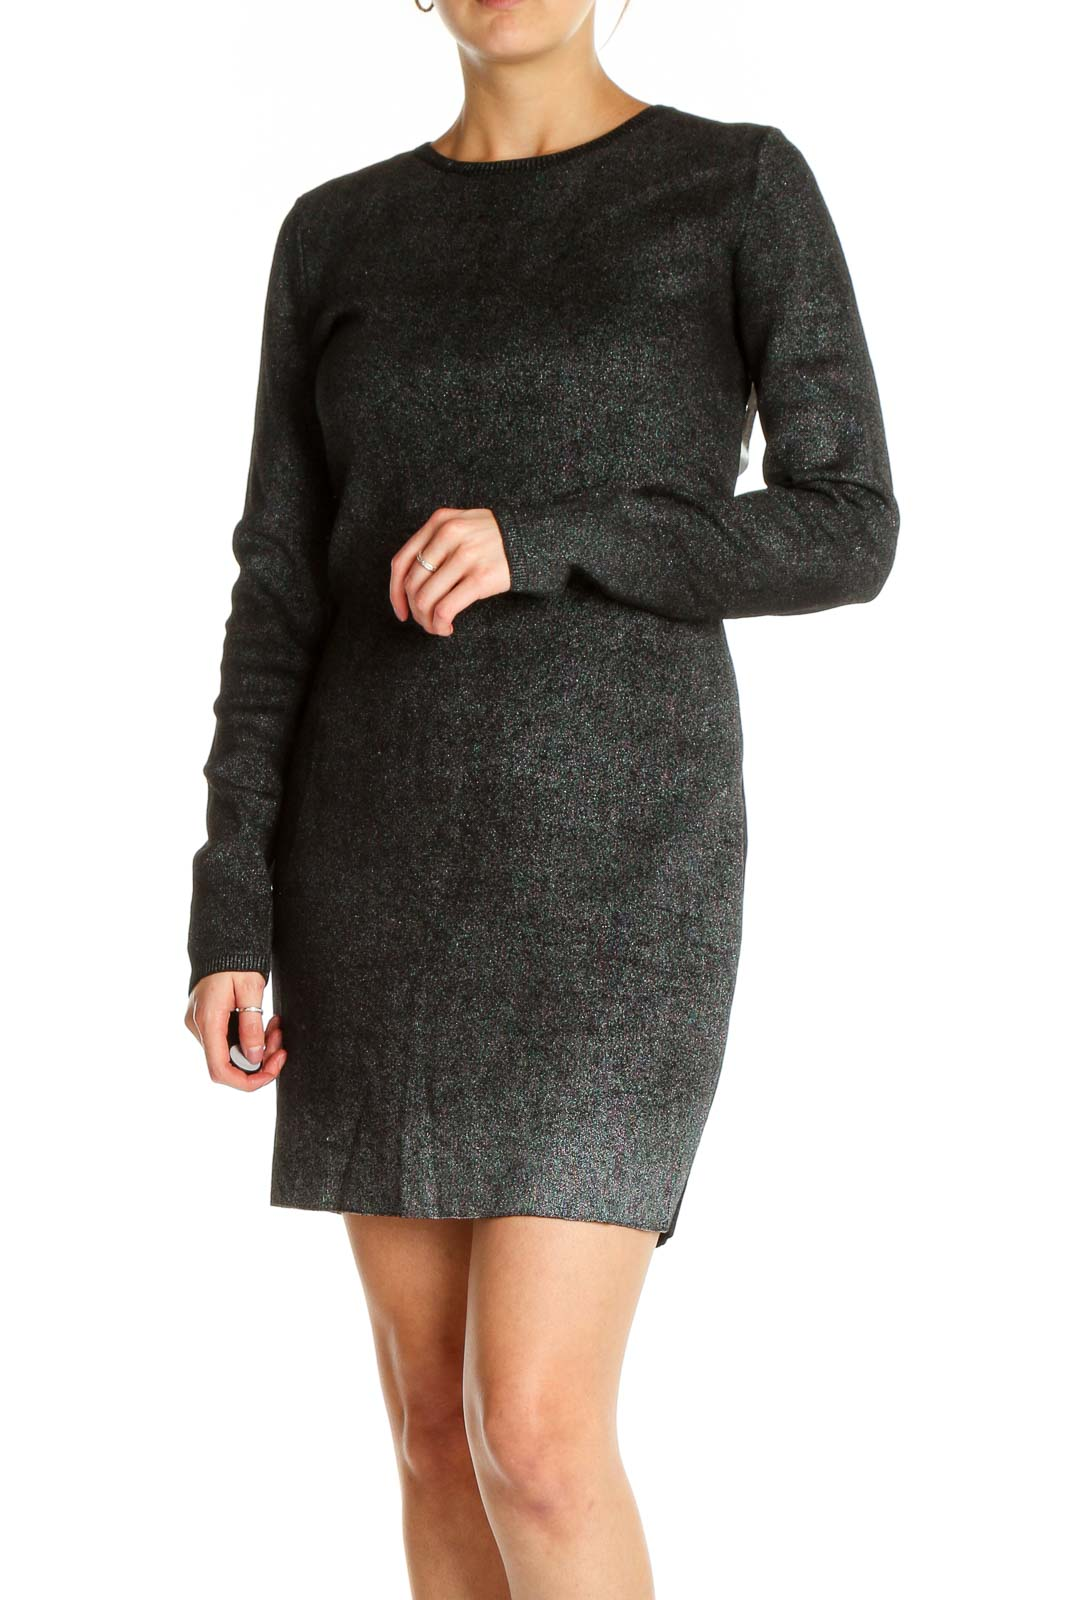 Black Textured Dress Front